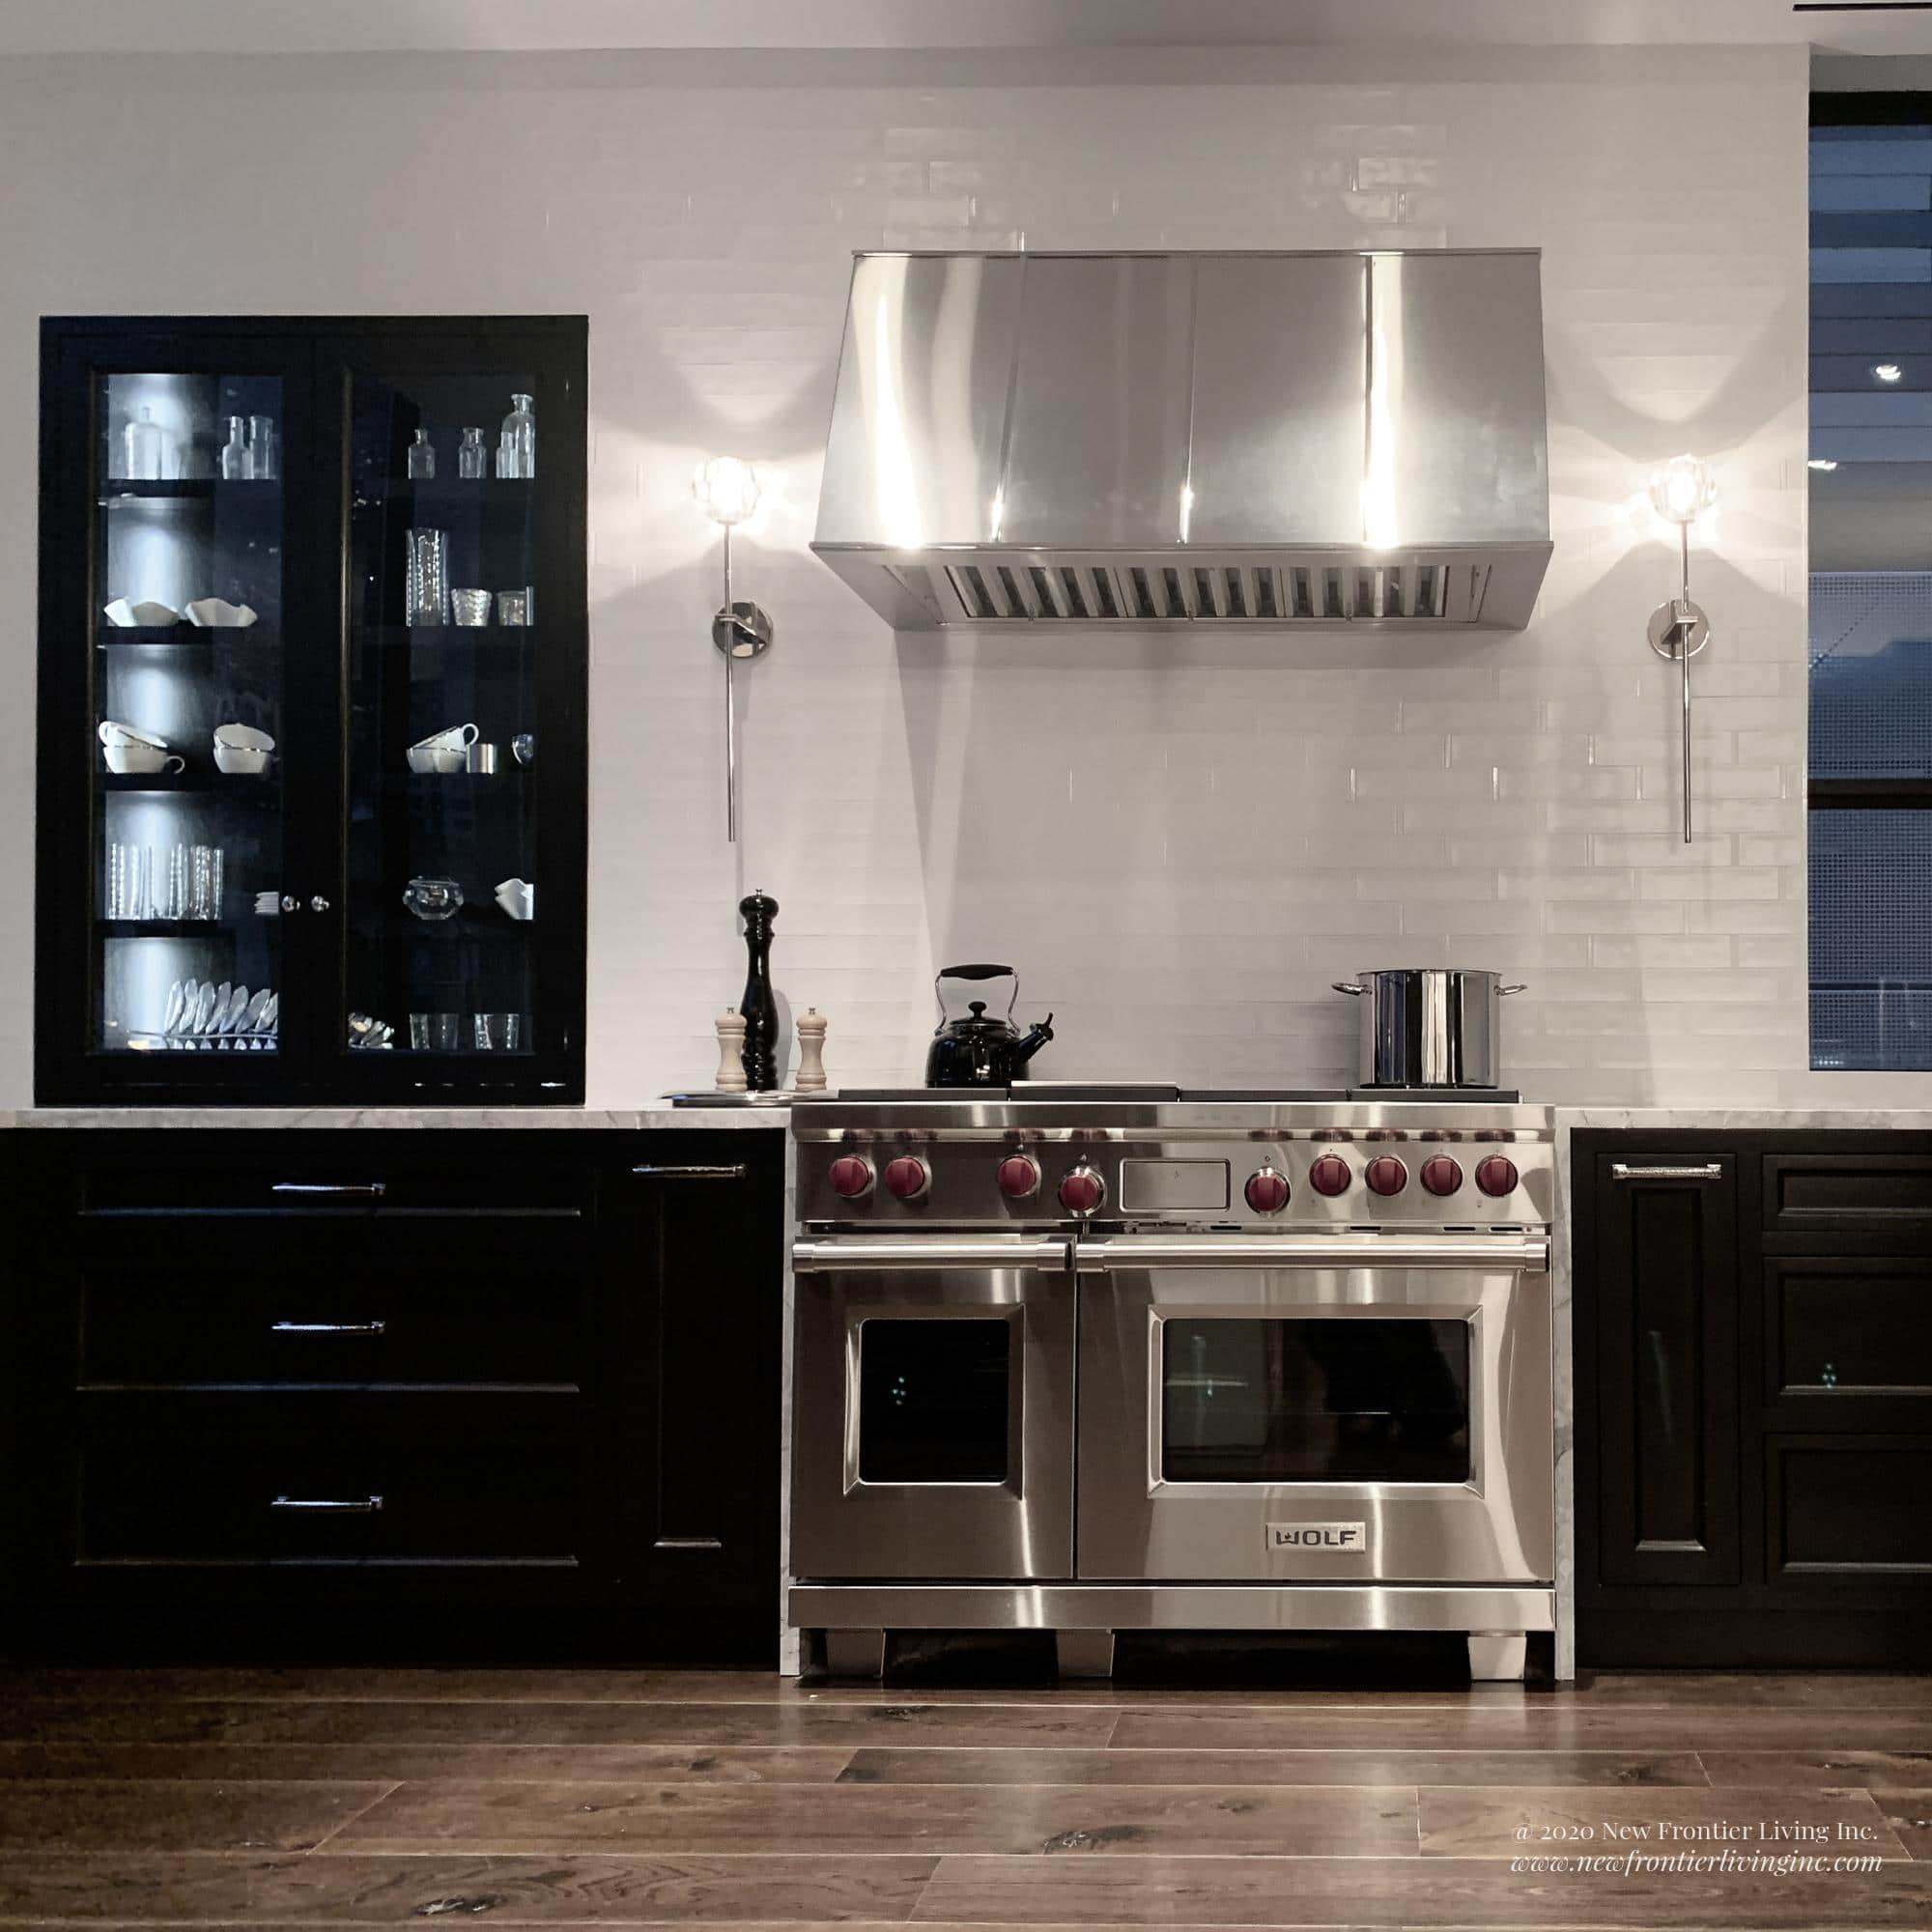 Traditional black kitchen with gray countertop and stainless steel hood and cooktop and oven with red knobs